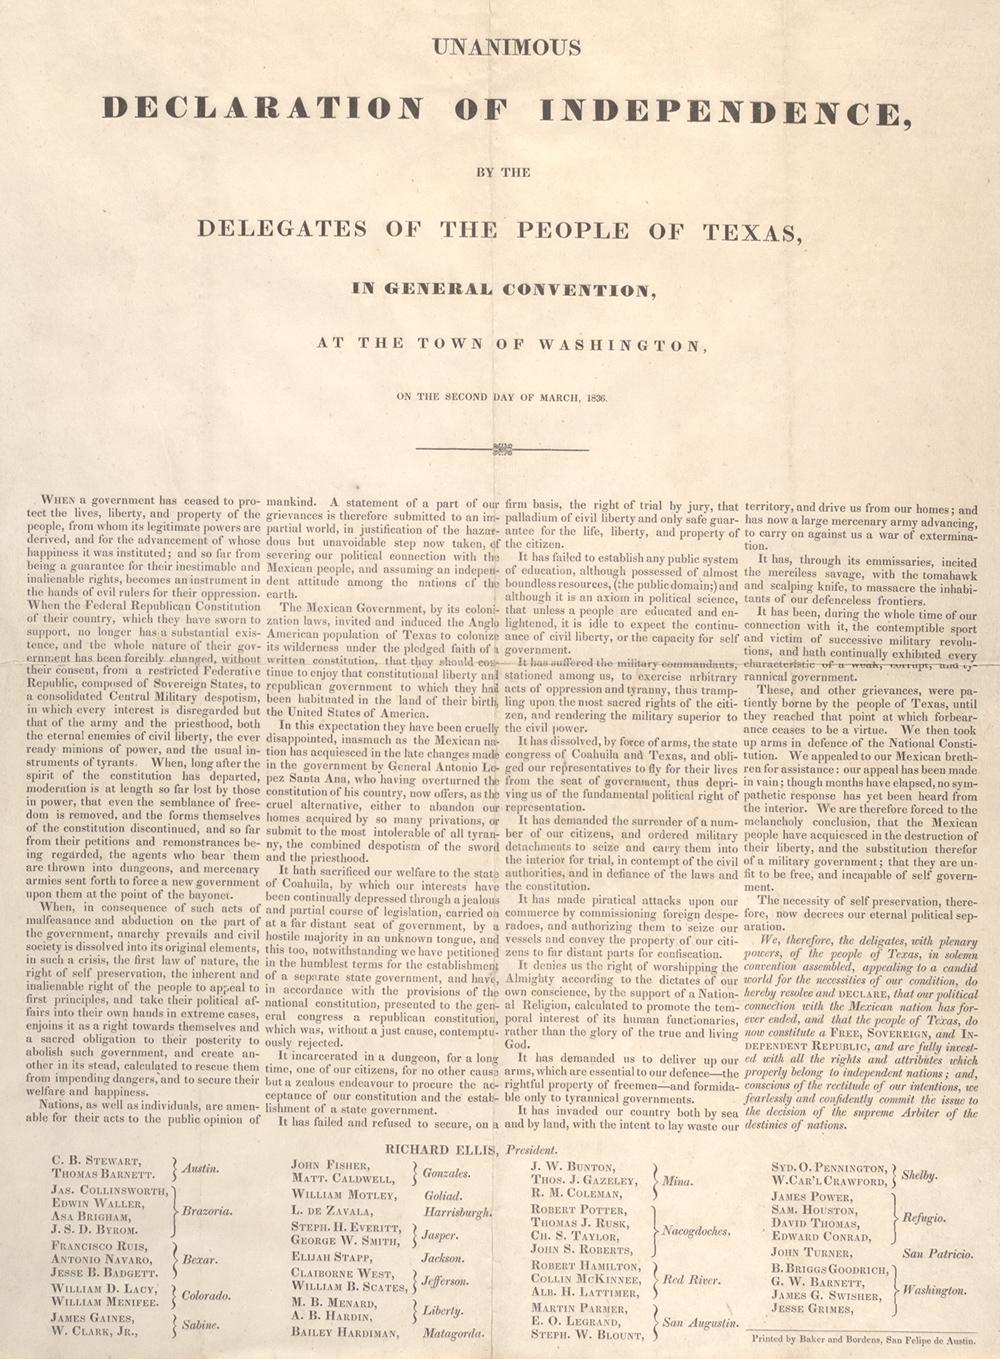 texas declaration of independence 1836 the gilder lehrman texas declaration of independence 2 1836 glc02559